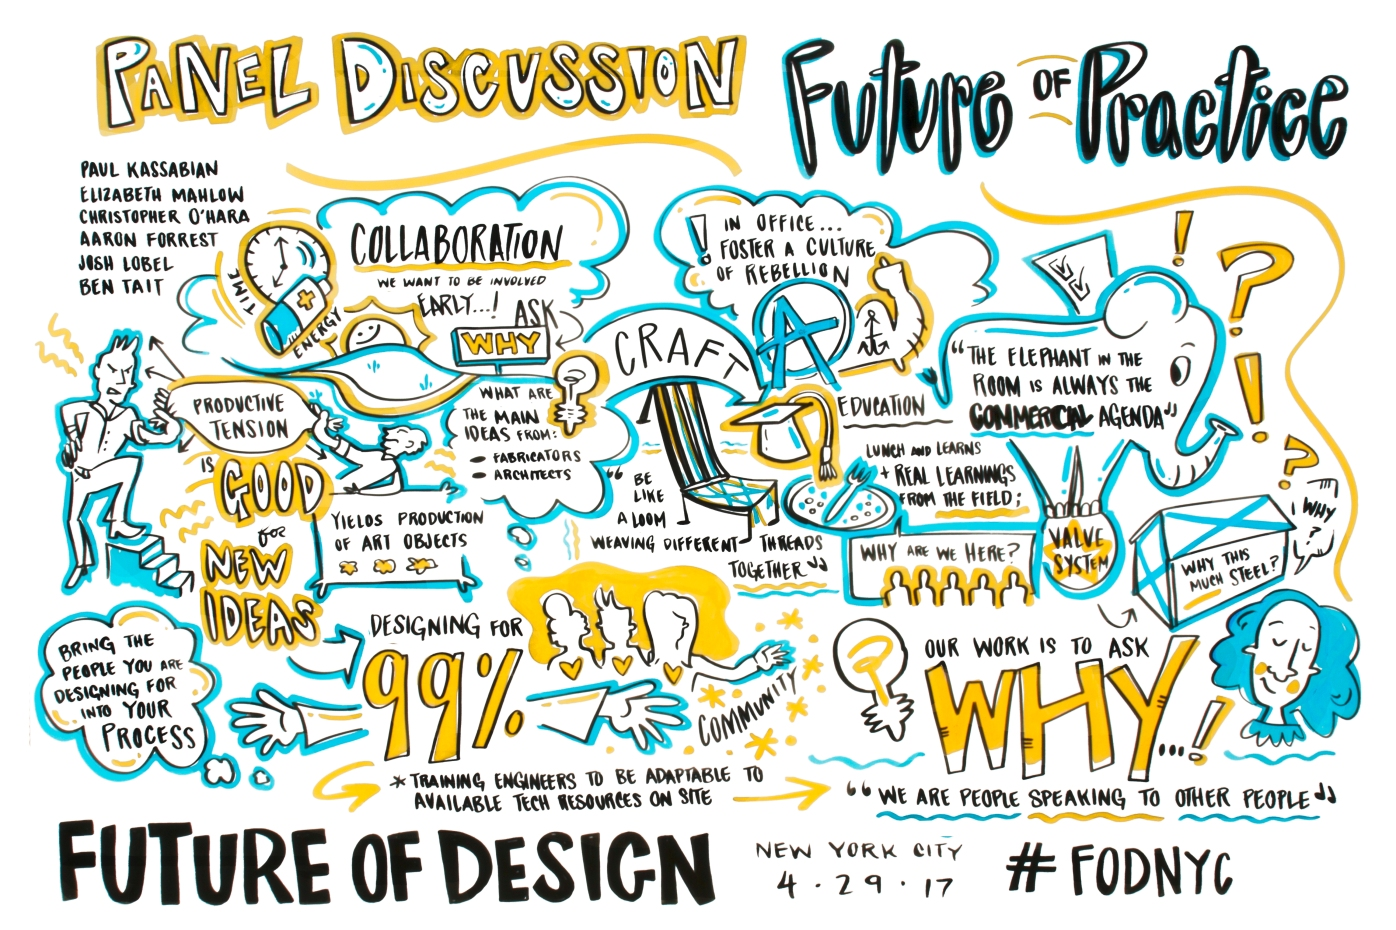 FutureofDesign_Panel